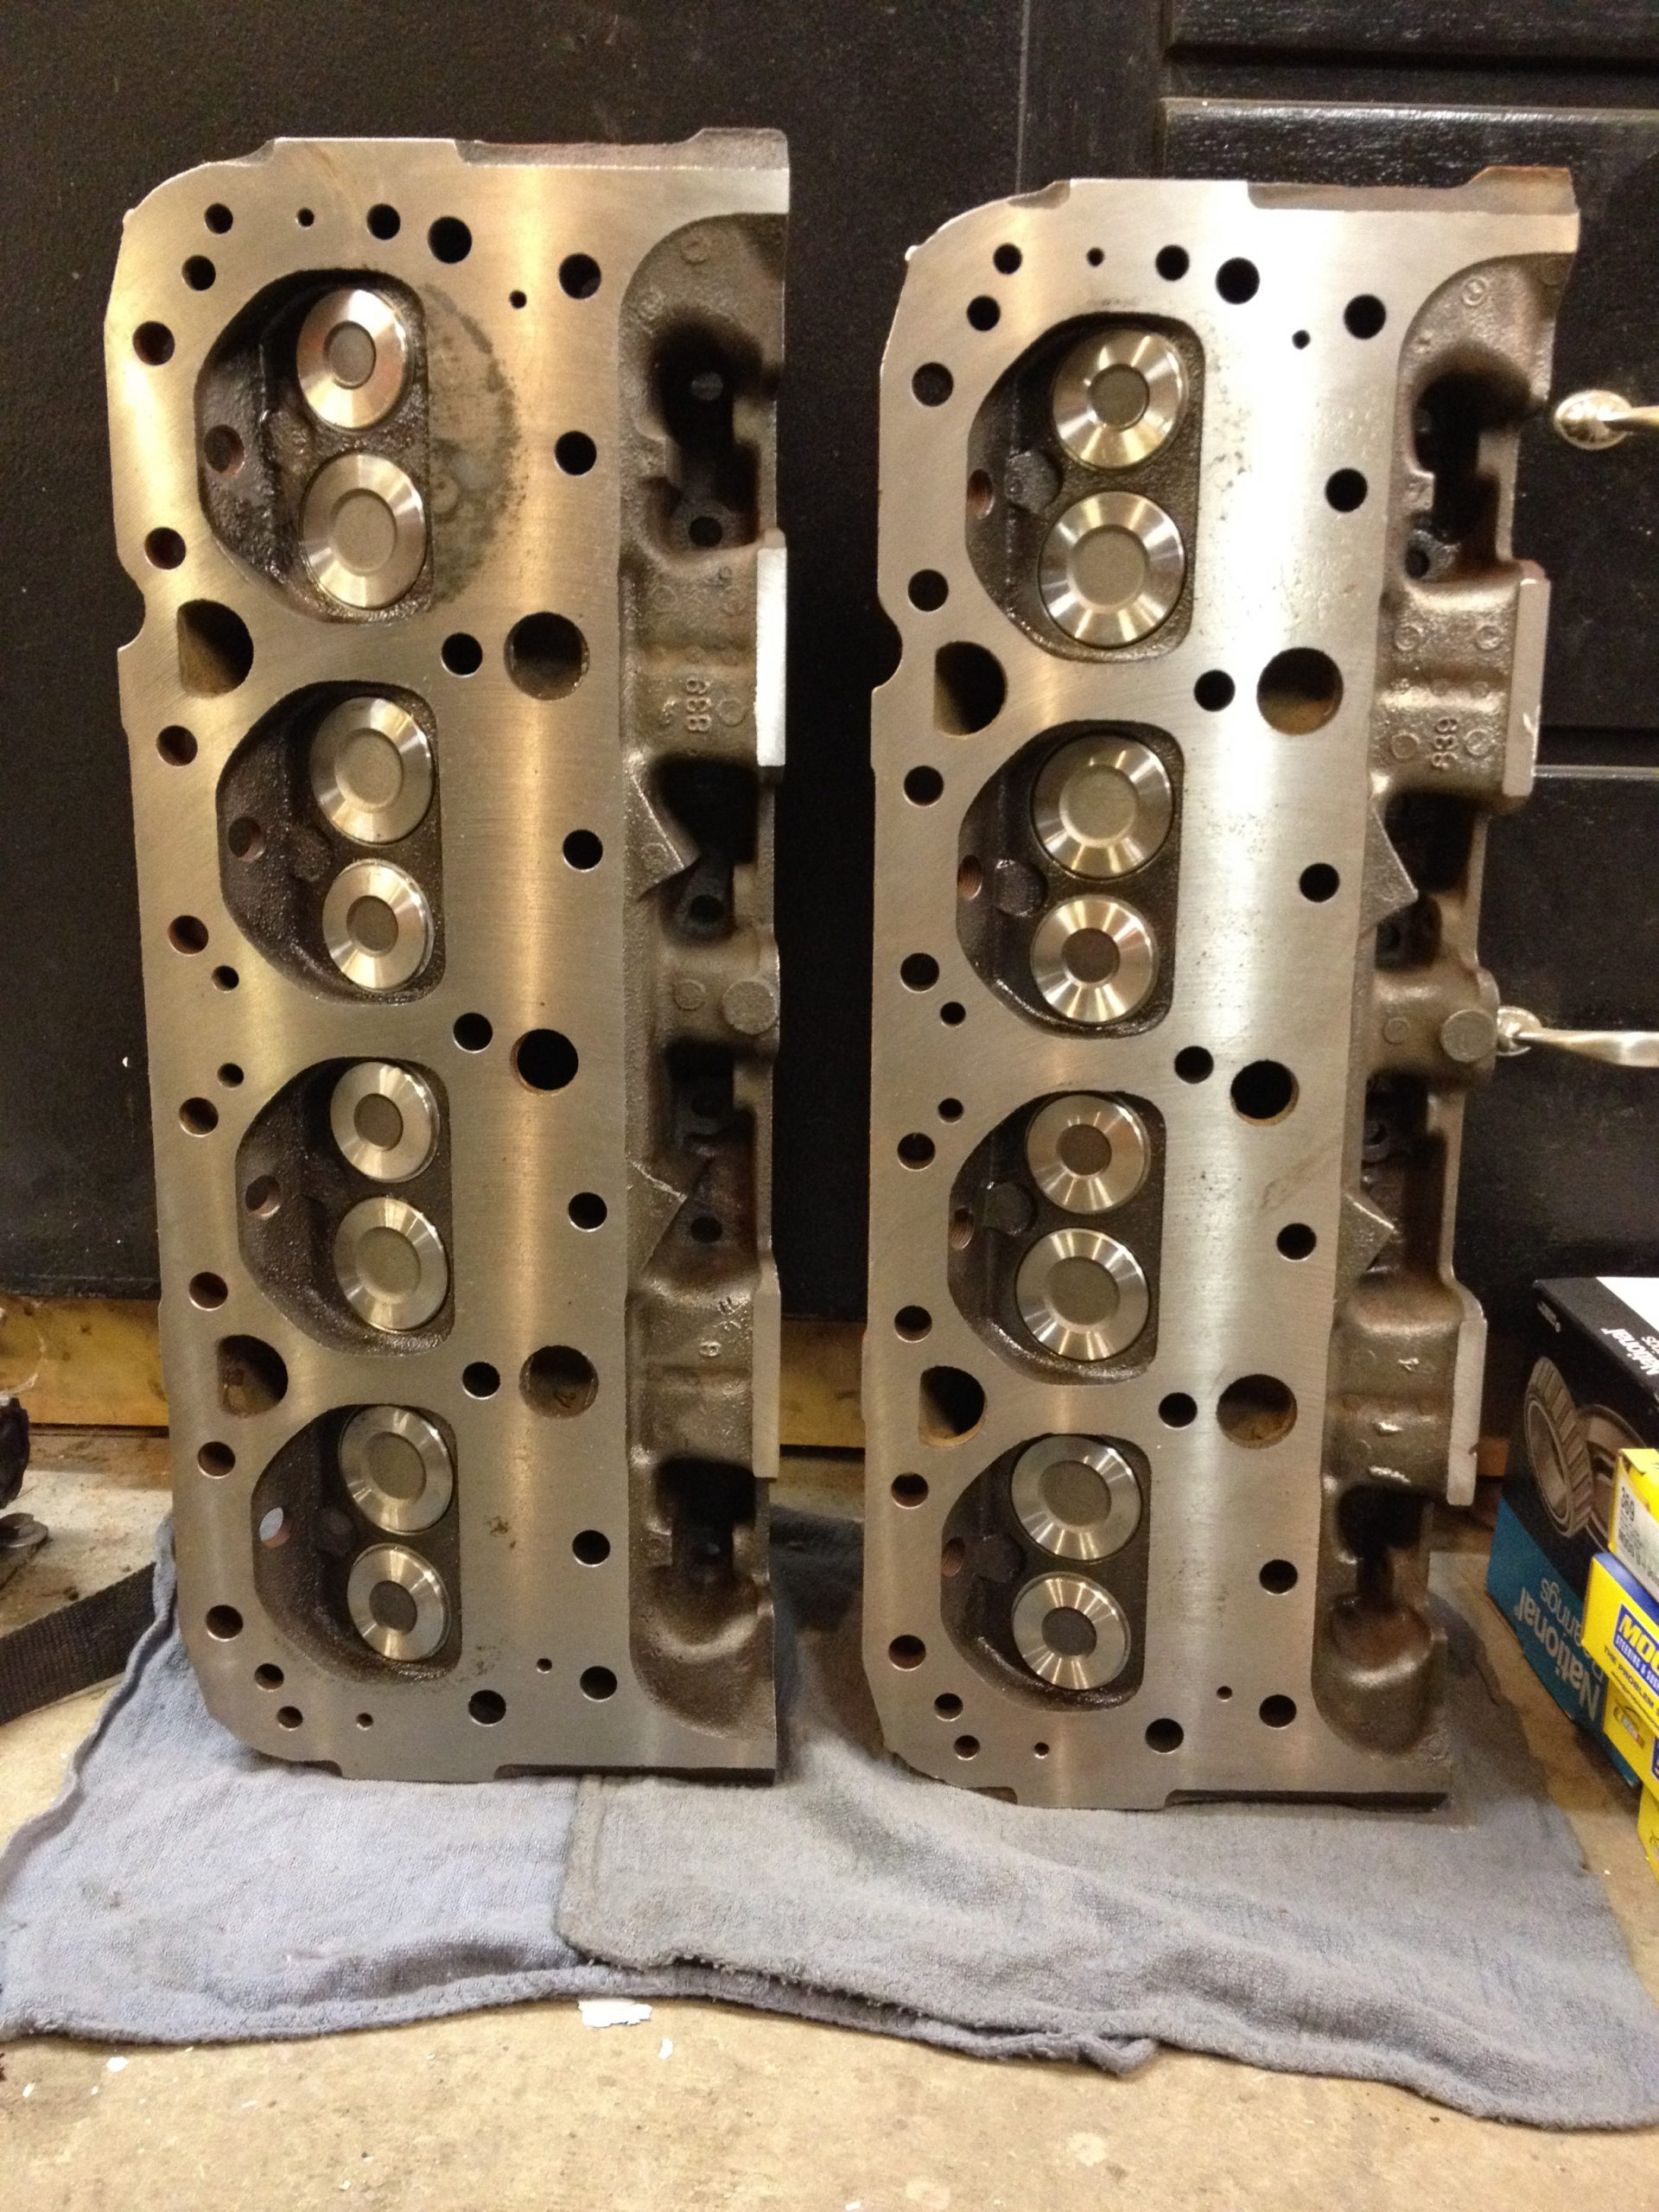 1959 Chevrolet Impala engine block